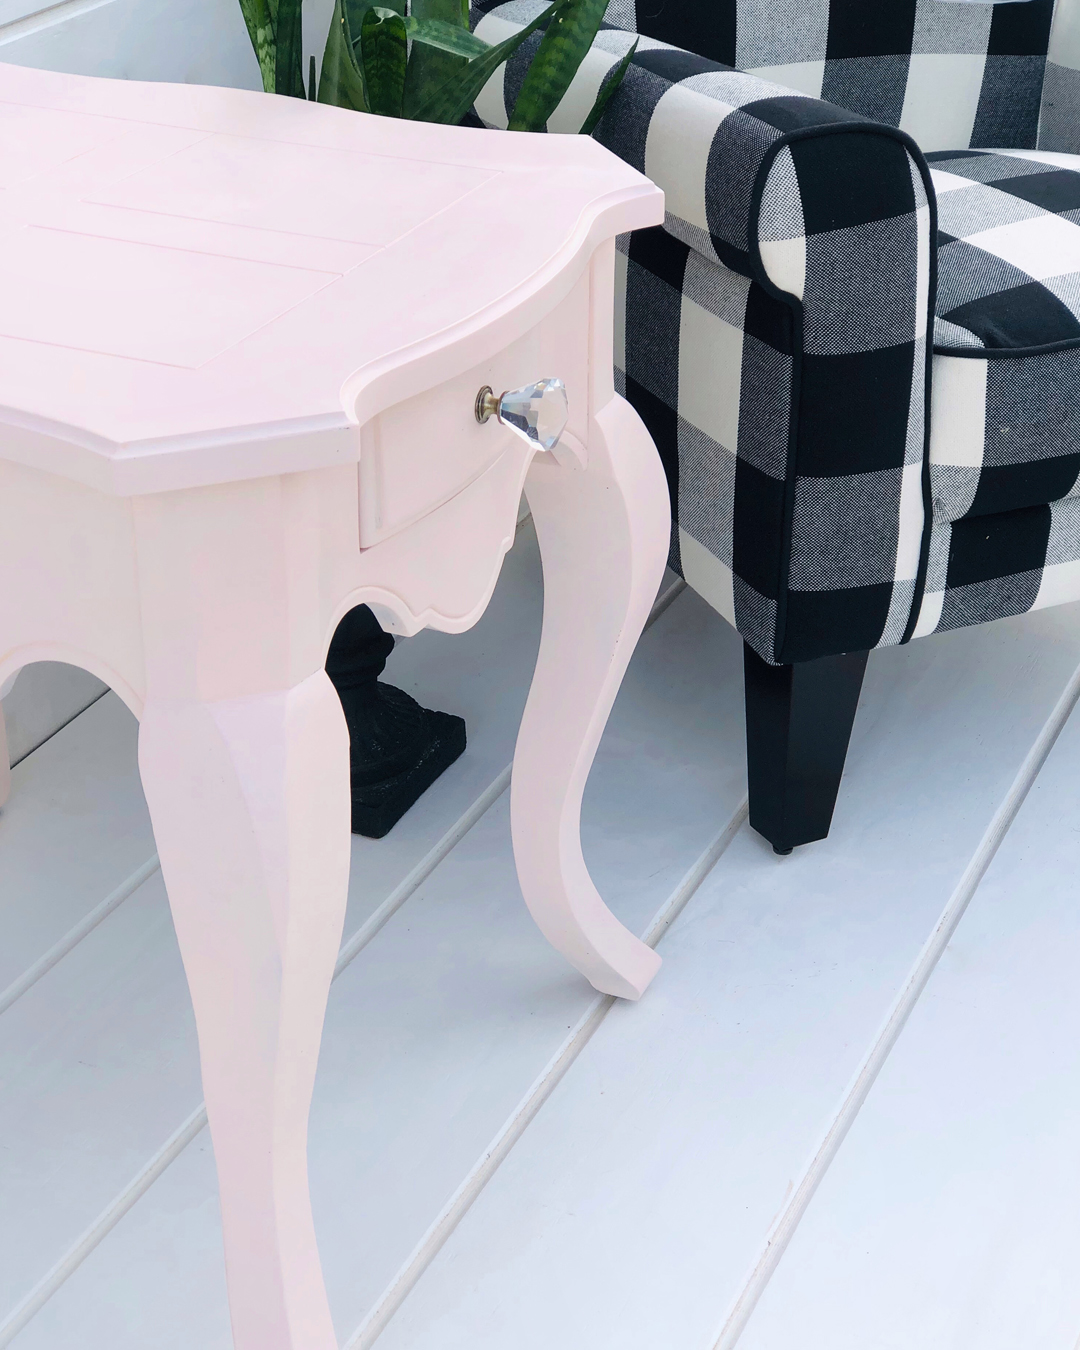 table makeover, DIY makeover, DIY furniture makeover, DIY at home project, furniture makeover project, pink side table DIY, furniture makeover project, before and after furniture makeover, BB Frosch, chalk paint DIY, chalk paint furniture makeover project, DIY furniture makeover inspiration, DIY home weekend project